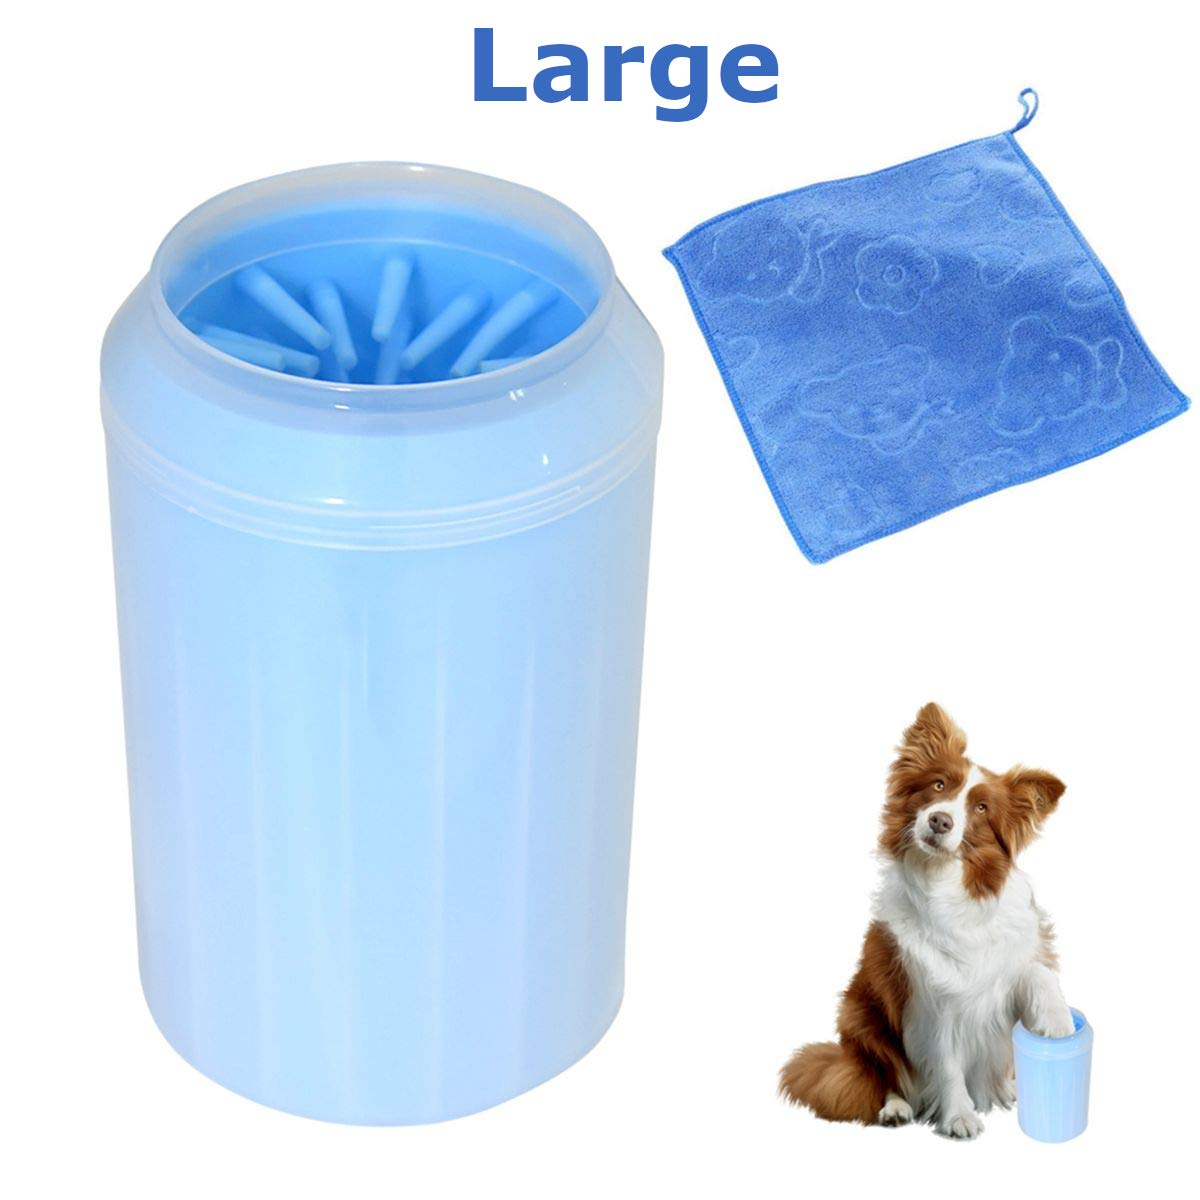 U-pick Pet Paws Cleaner Large Dog Paw Washer with Towel Feet Scrubber Claw Cleaning Cup for Large Small Breed (Blue)